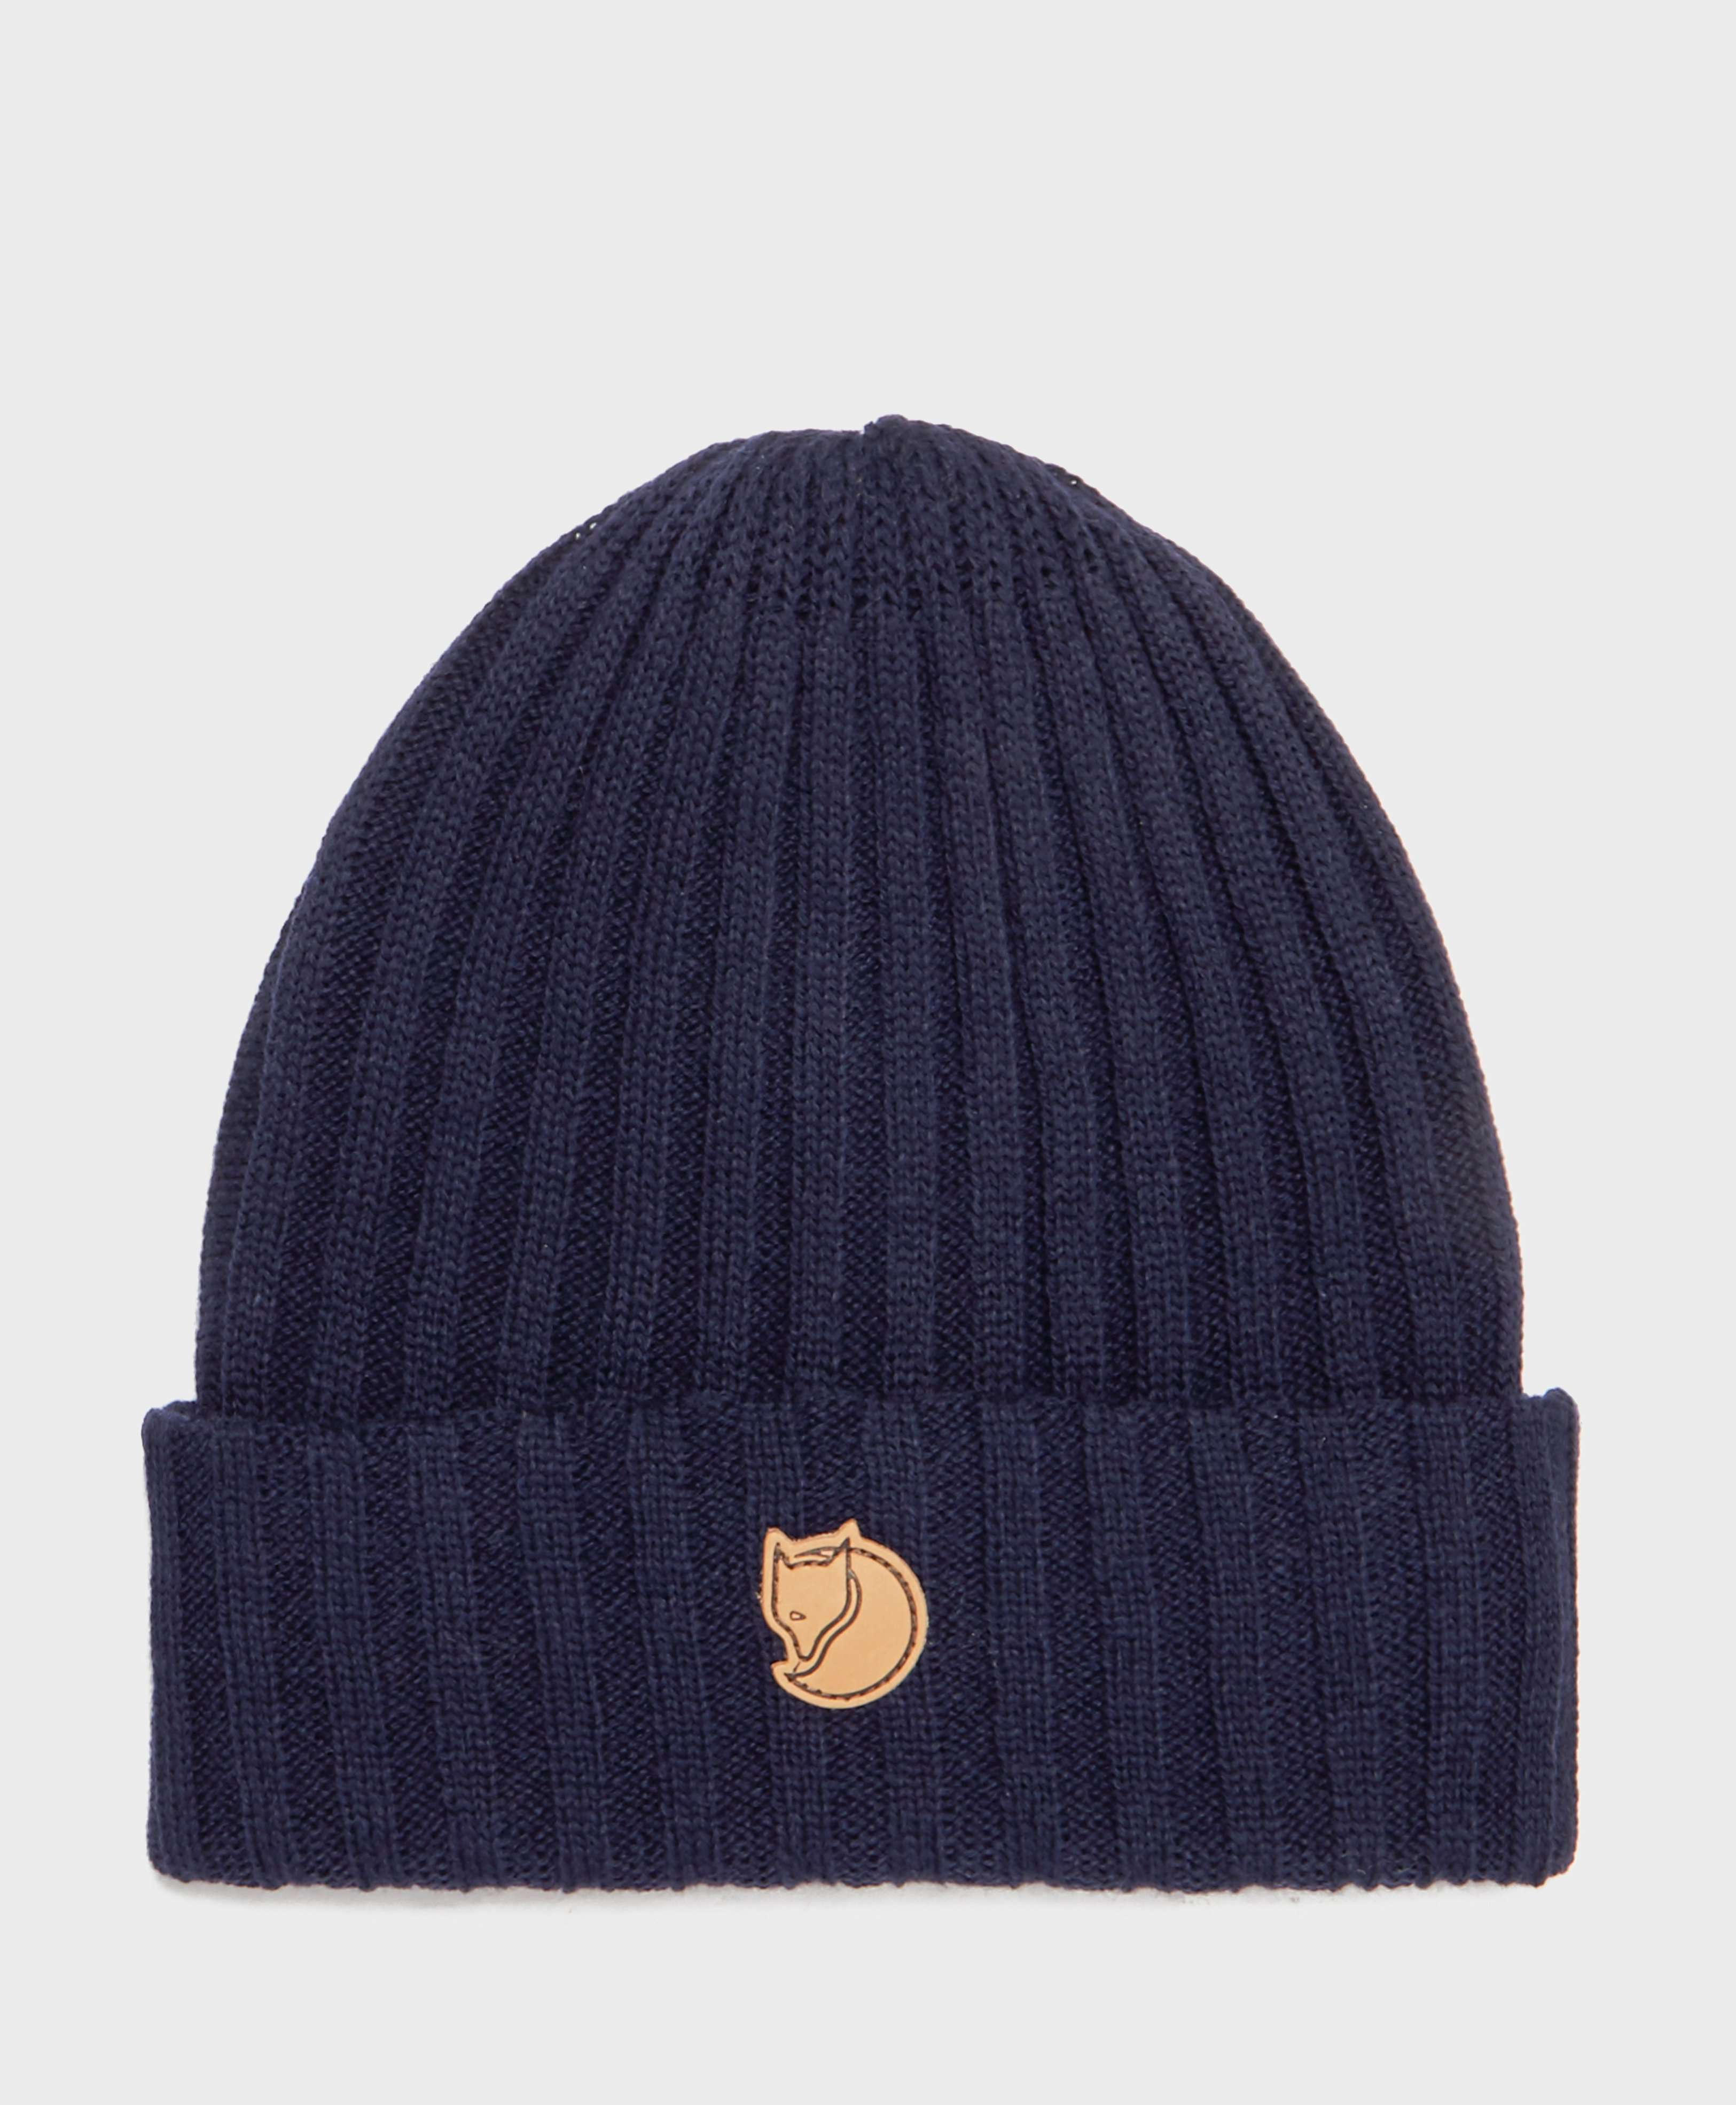 Fjallraven Byron Knitted Beanie - Online Exclusive